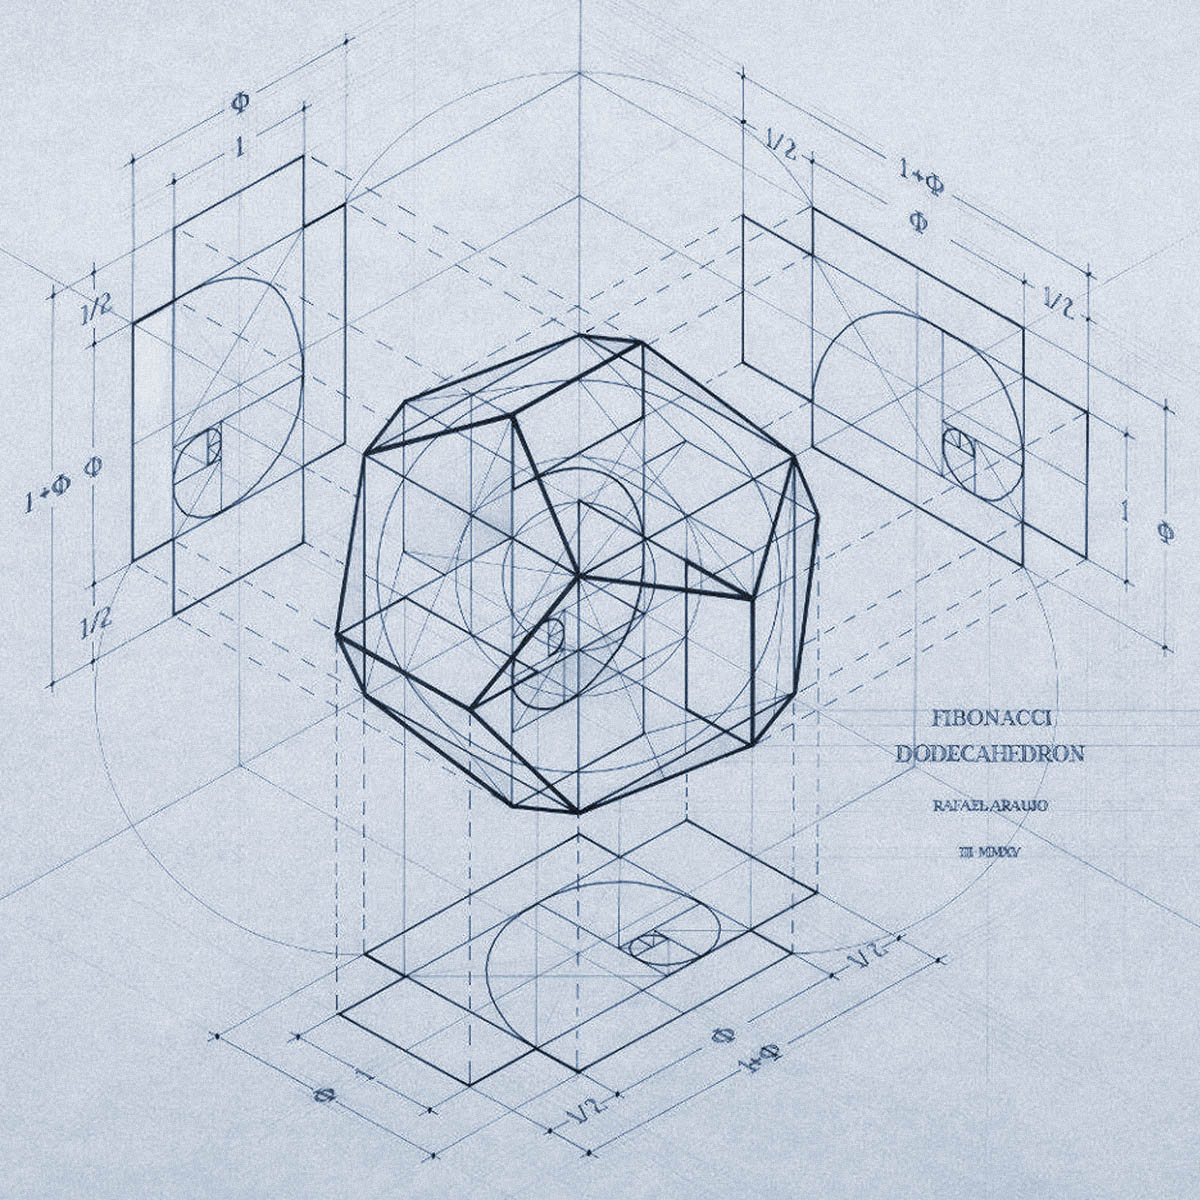 DODECAHEDRON I orgonion ion